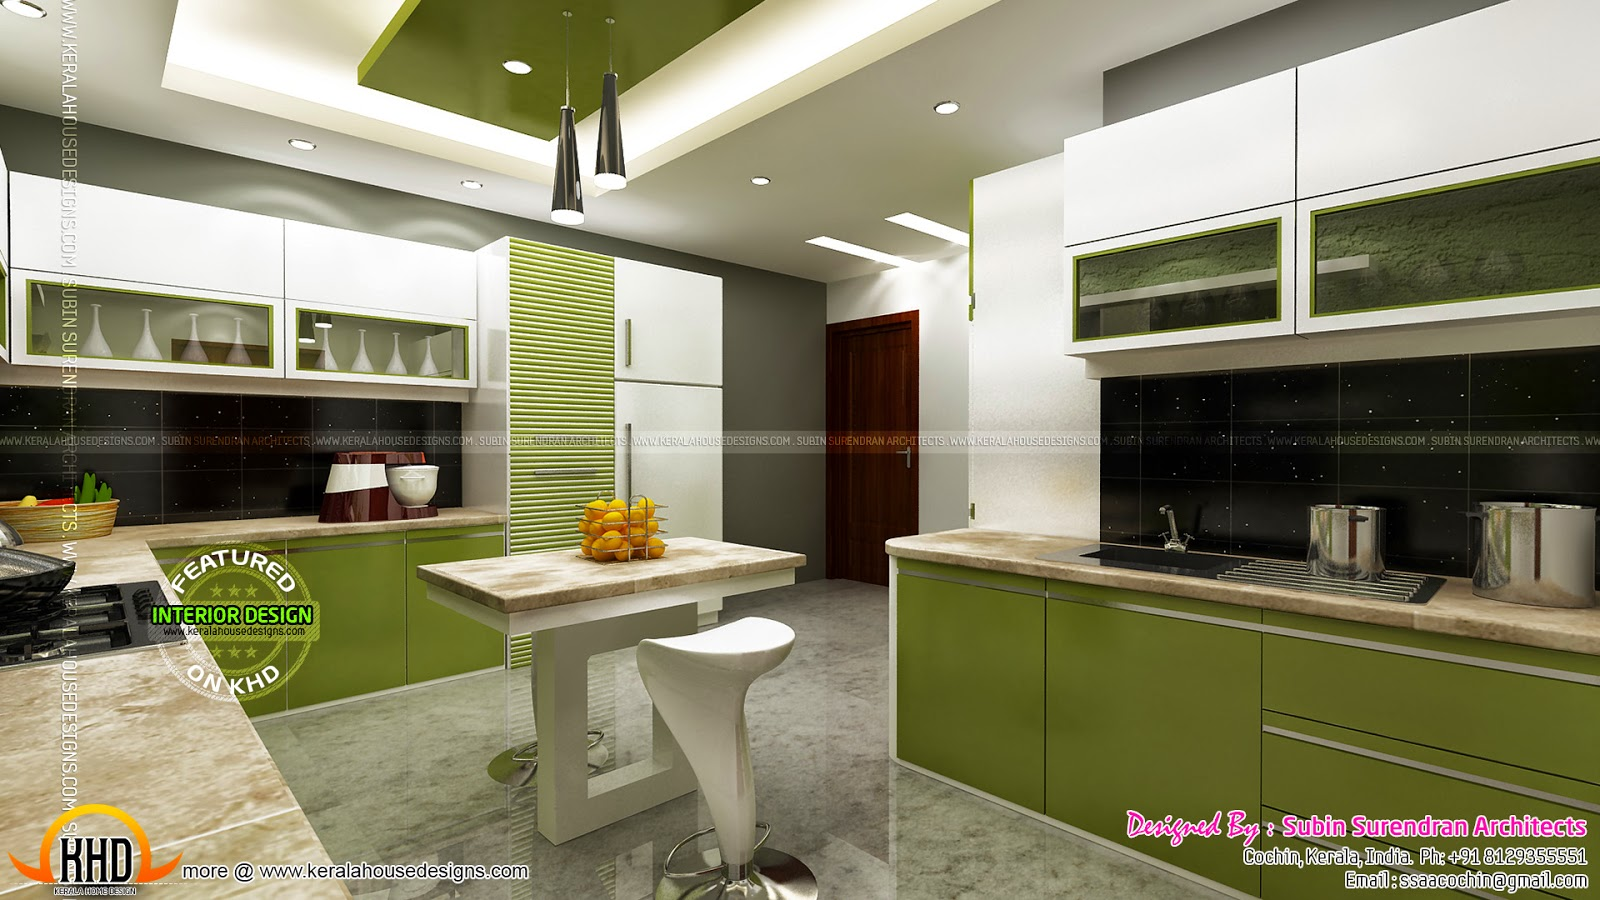 Luxury interior designs in kerala kerala home design and for Kerala homes interior designs